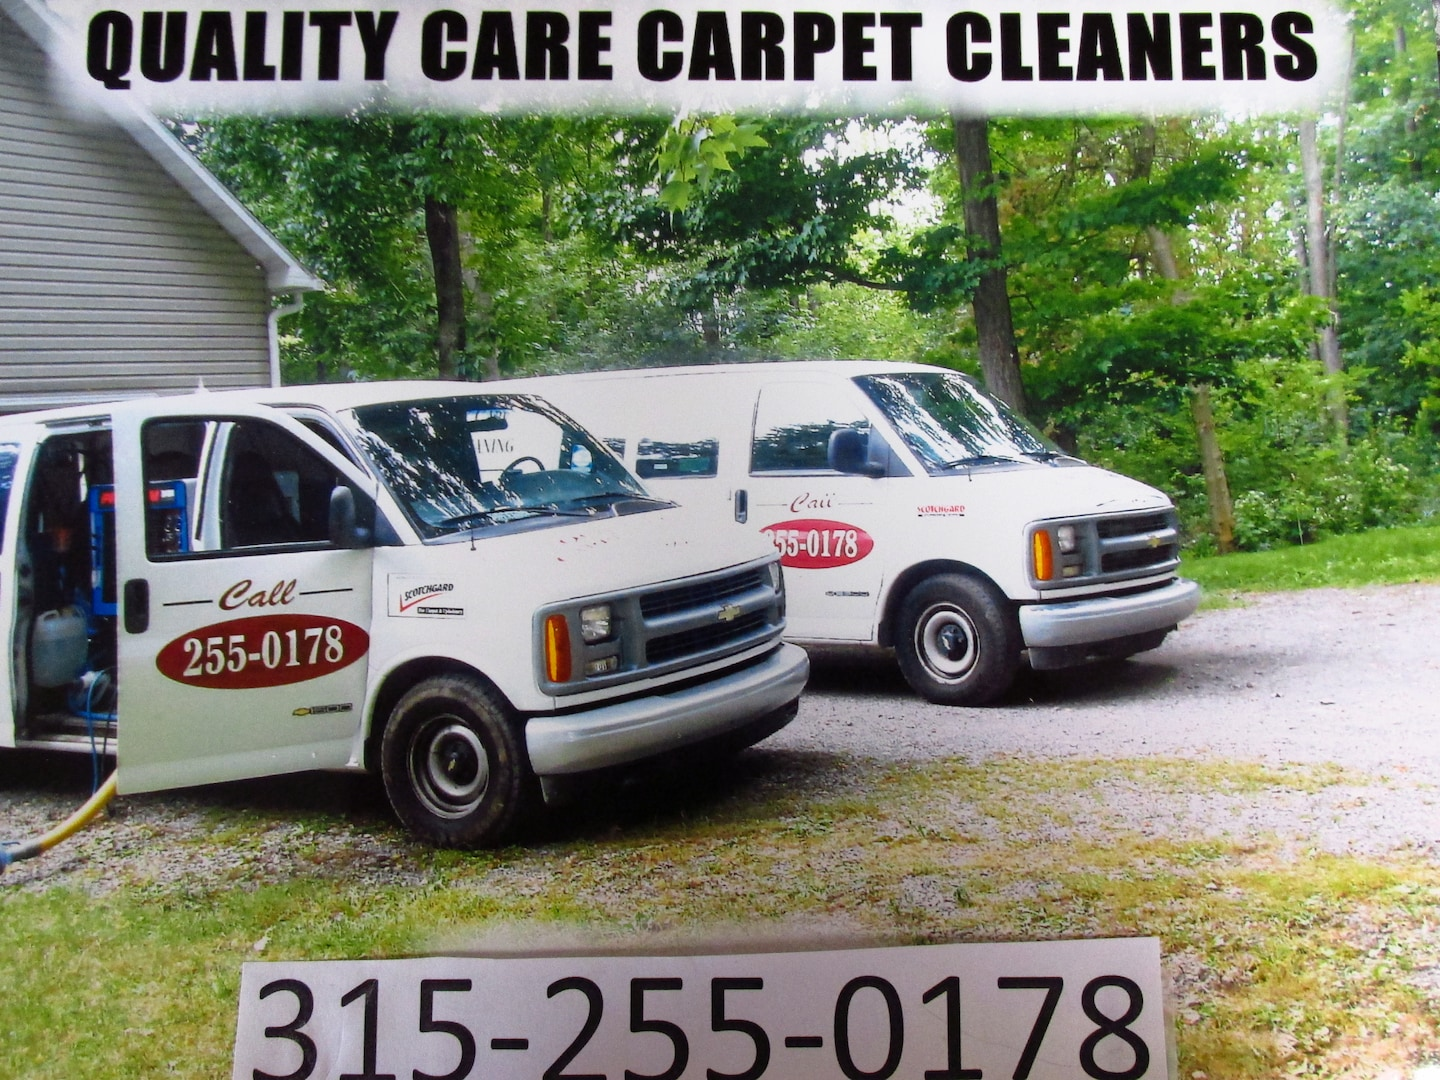 Quality Care Carpet Cleaners